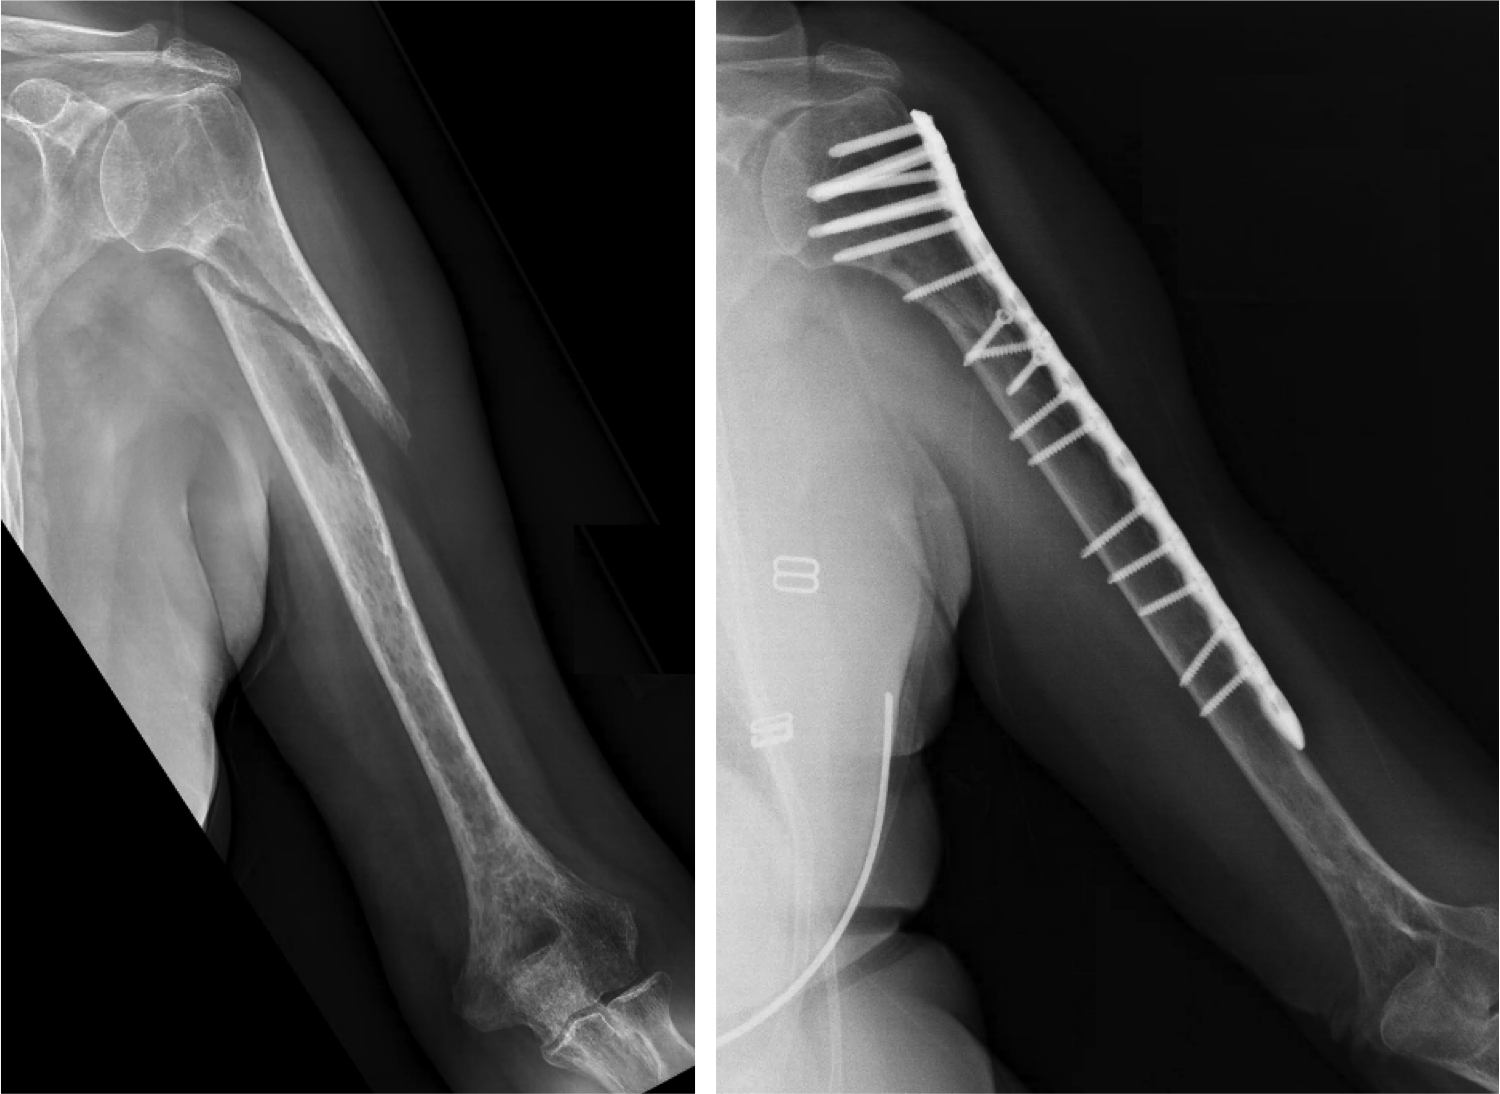 """Humerus non-union.  A """"non-union"""" is a fracture that does not heal on its own. This humerus fracture did not heal despite ~8 months in a brace, and despite the use of a bone stimulator (image on left). For humerus non-unions that do not heal in a brace, surgery with bone graft, a metal plate, and screws can be successful (as shown in the image on the right)."""